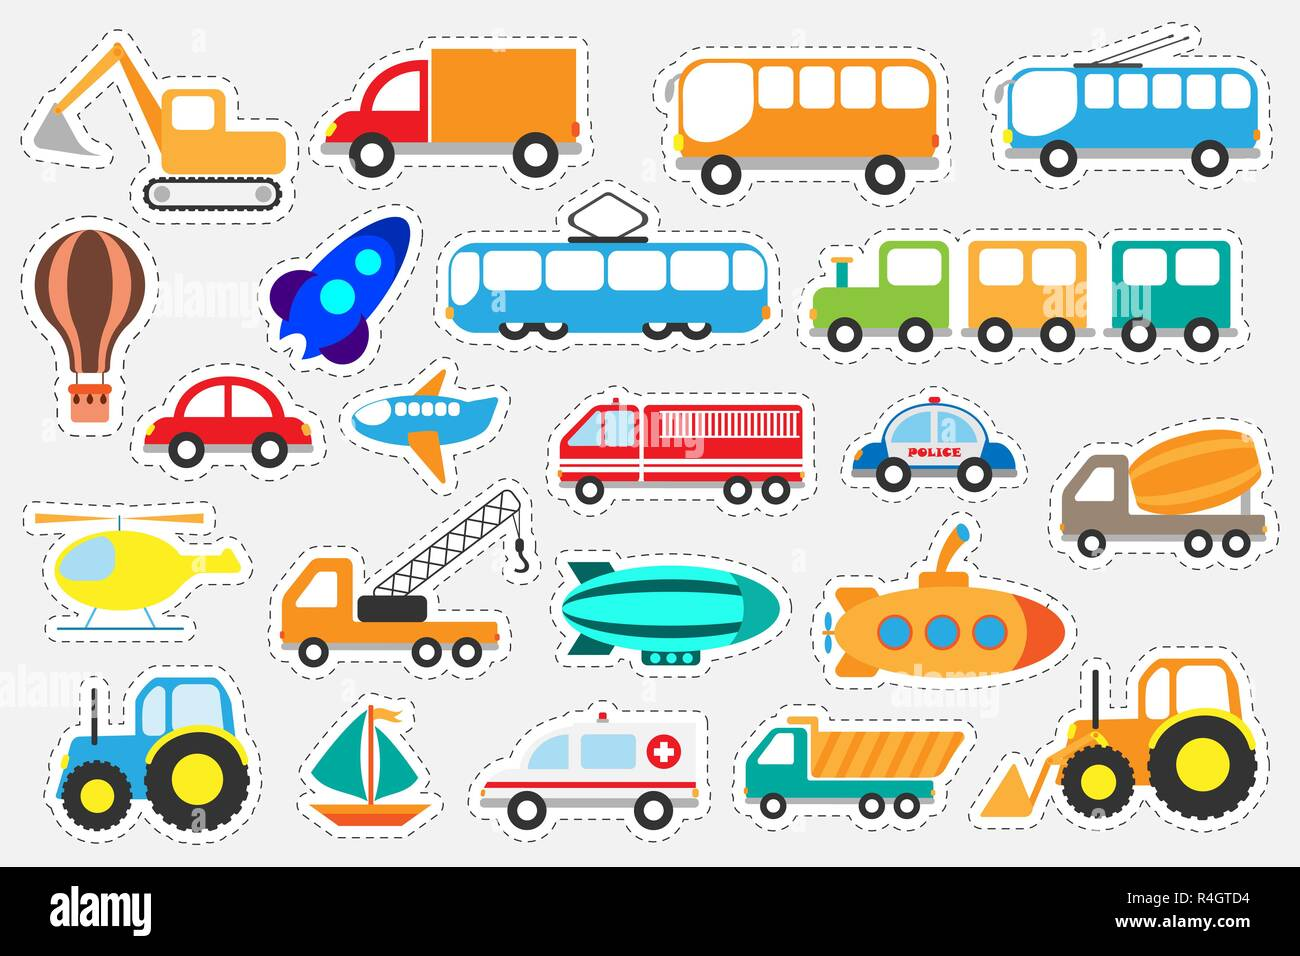 Different Colorful Transport For Children, Fun Education